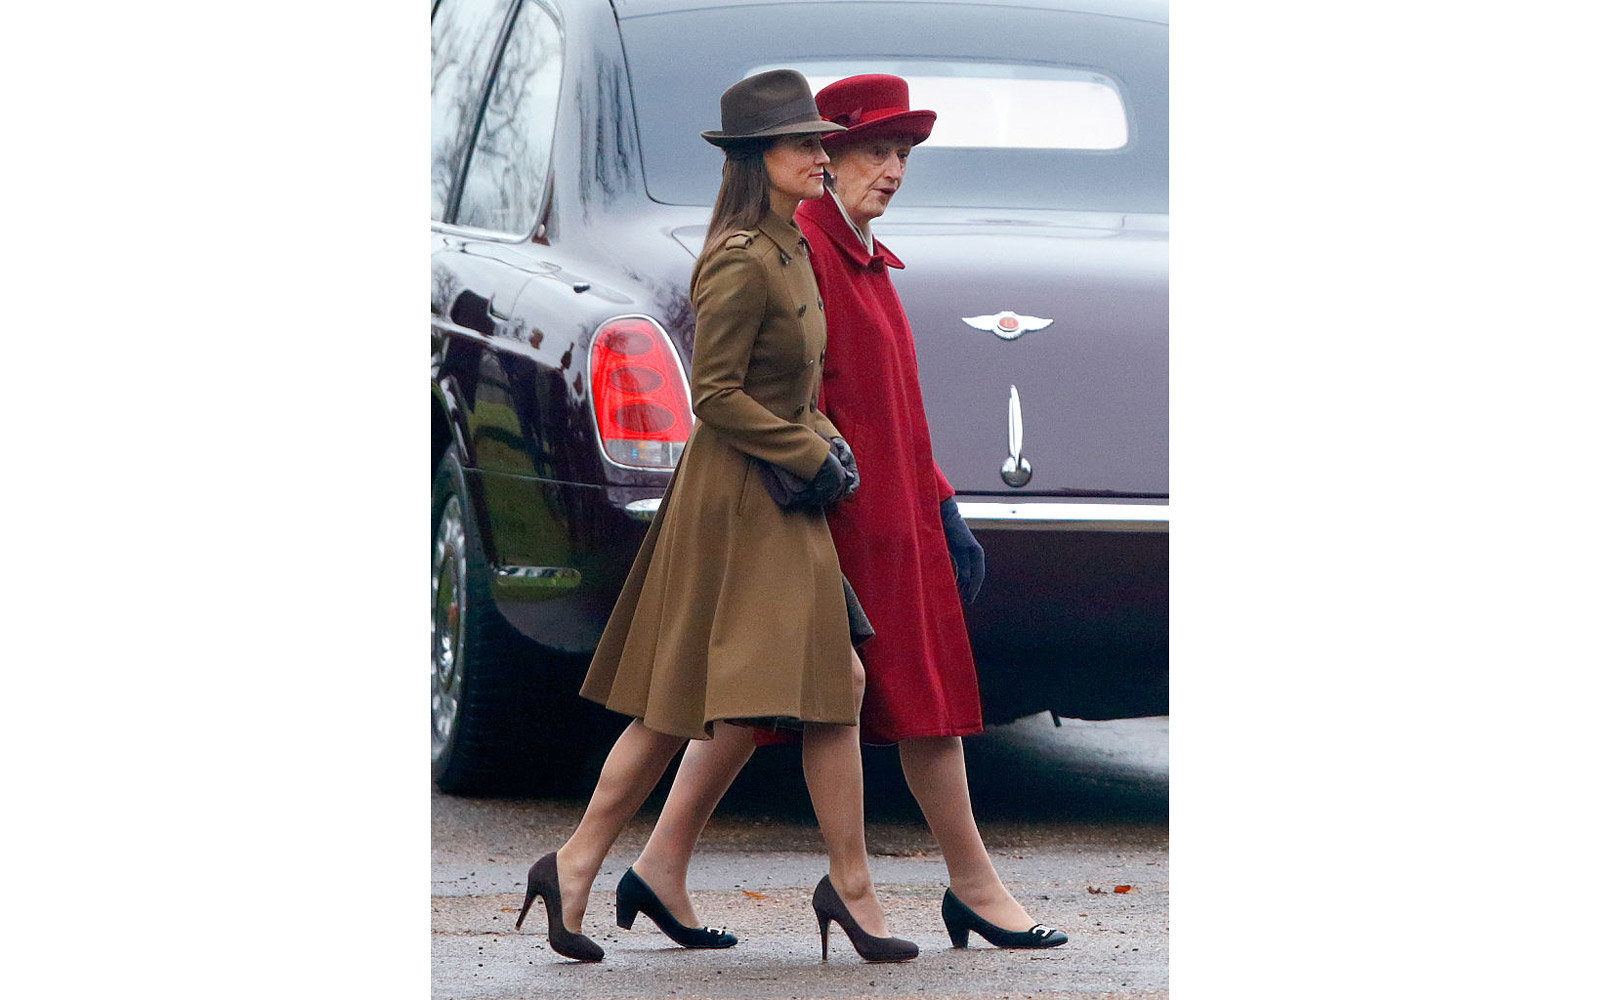 KING'S LYNN, UNITED KINGDOM - JANUARY 08: (EMBARGOED FOR PUBLICATION IN UK NEWSPAPERS UNTIL 48 HOURS AFTER CREATE DATE AND TIME) Pippa Middleton and Lady Susan Hussey (Lady in Waiting to Queen Elizabeth II) attend the Sunday service at St Mary Magdalene C